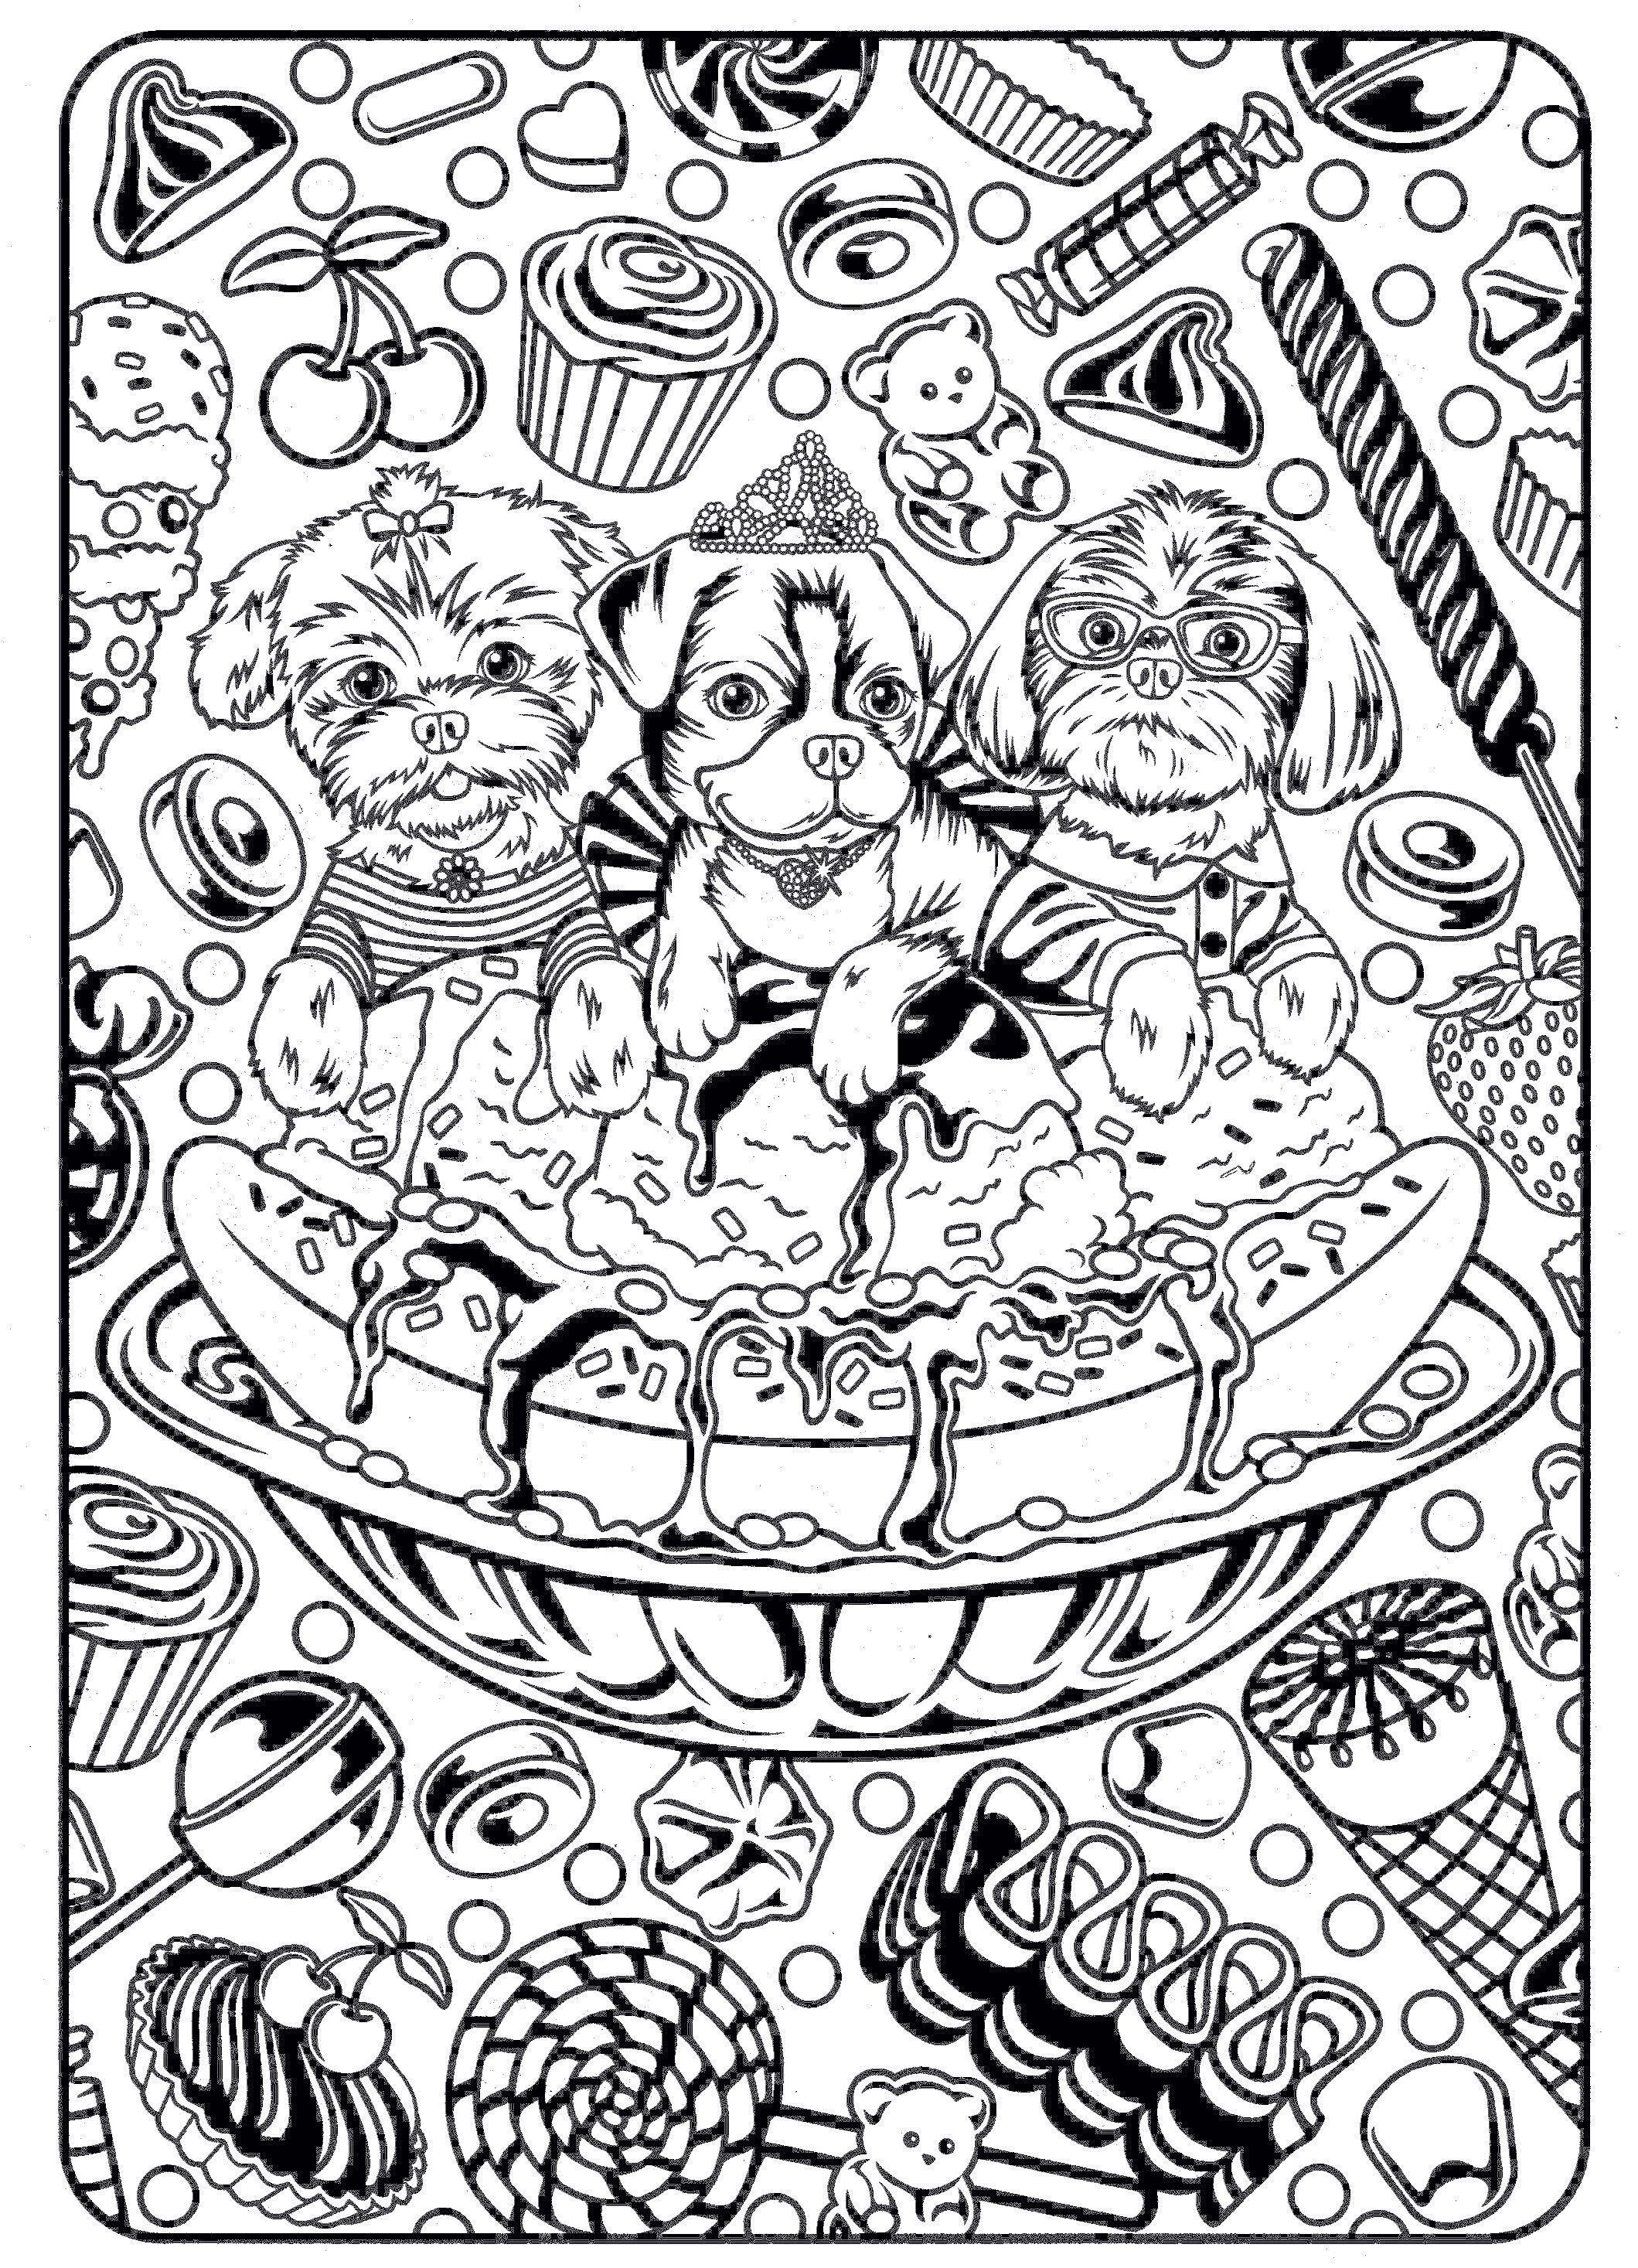 Pin On Top Ideas For Coloring Page Printable [ 2934 x 2119 Pixel ]